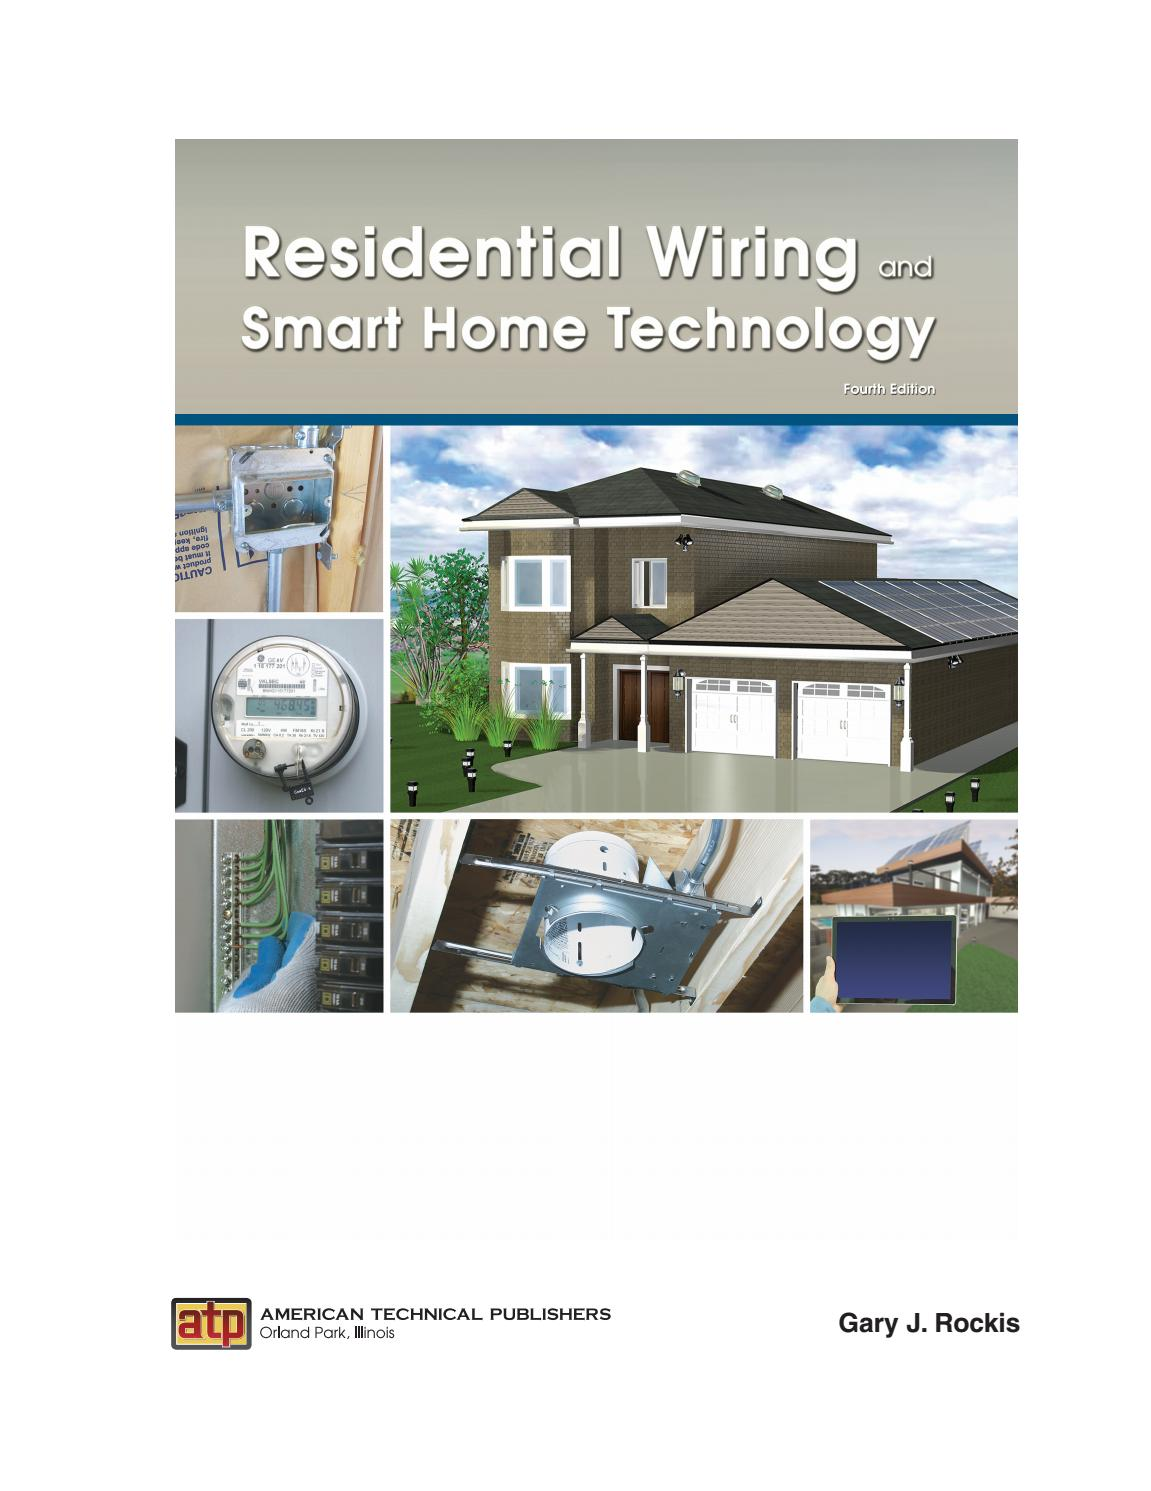 smart home wiring residential wiring and smart home technology by american technical smart home wiring diagram pdf residential wiring and smart home